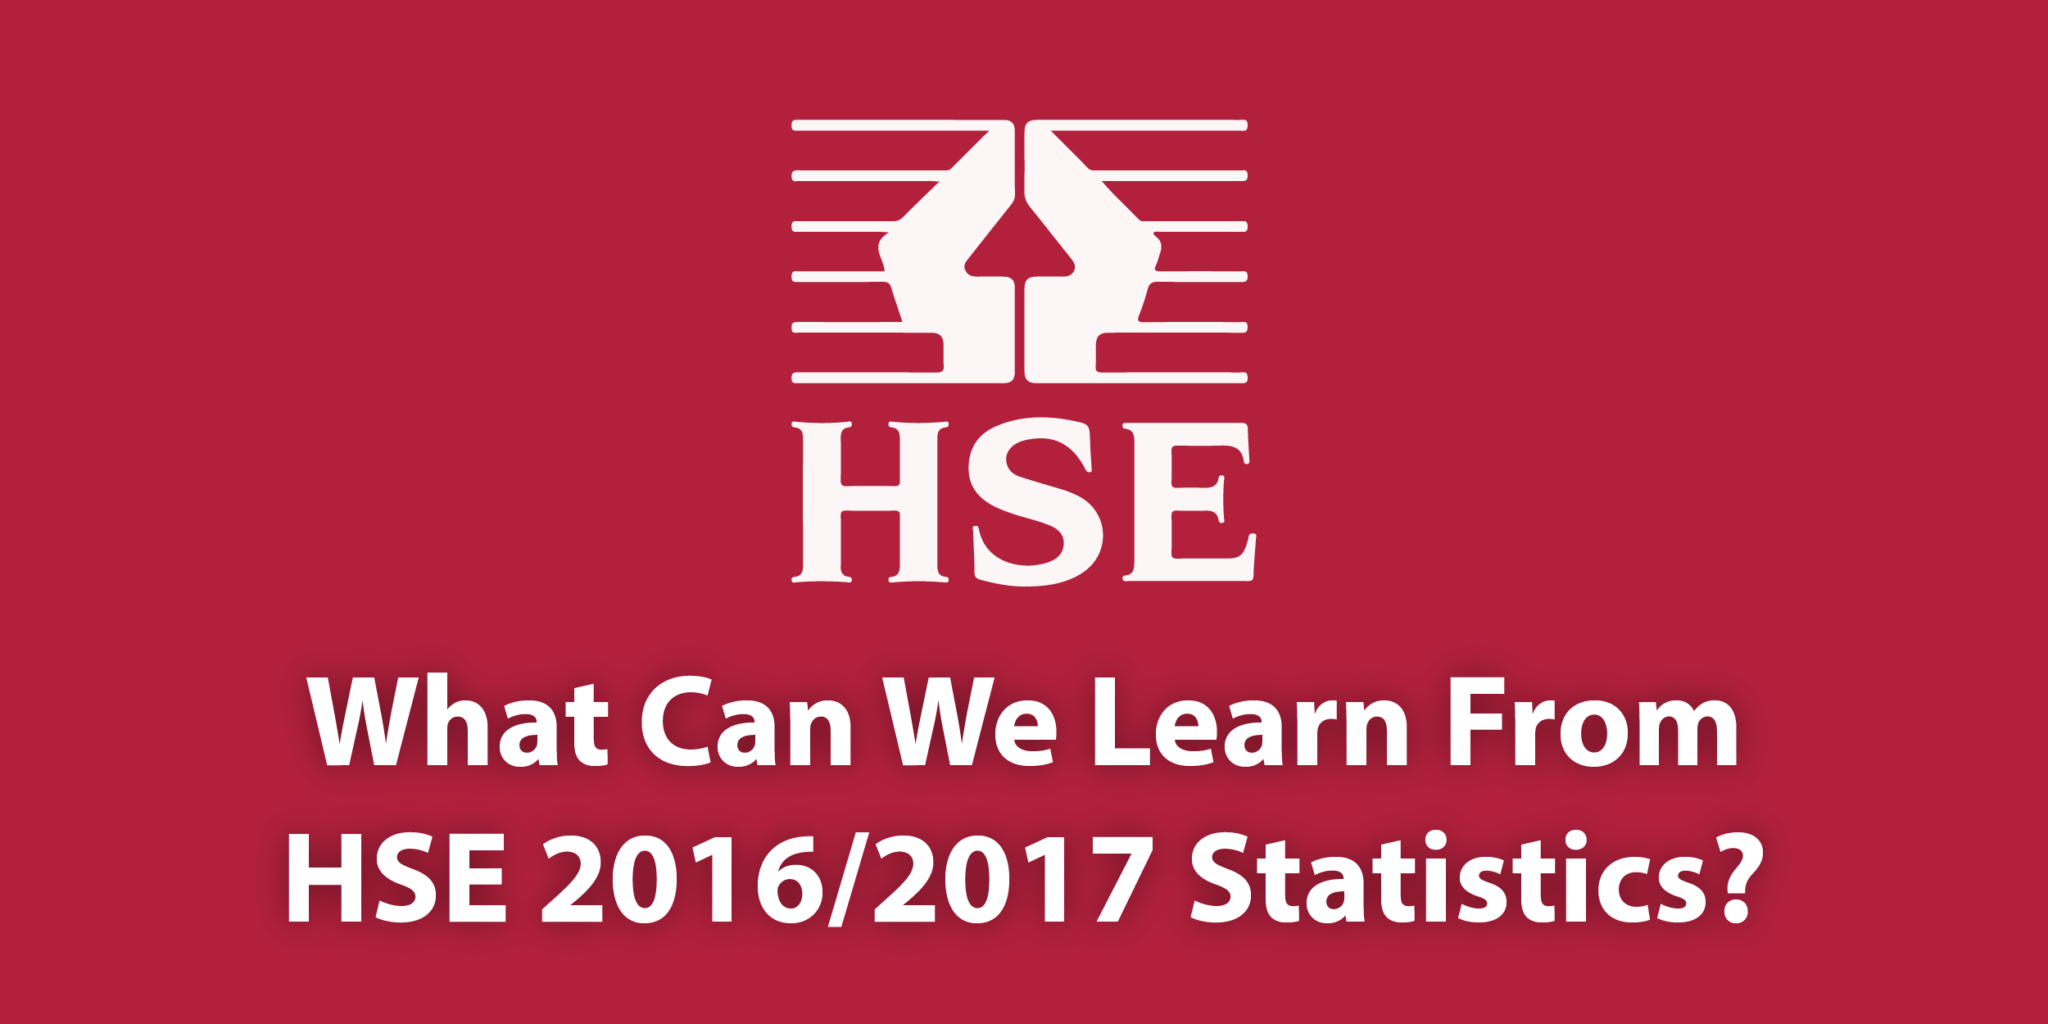 HSE Health And Safety Statistics 2017 - What We Can Learn. ADL Associates